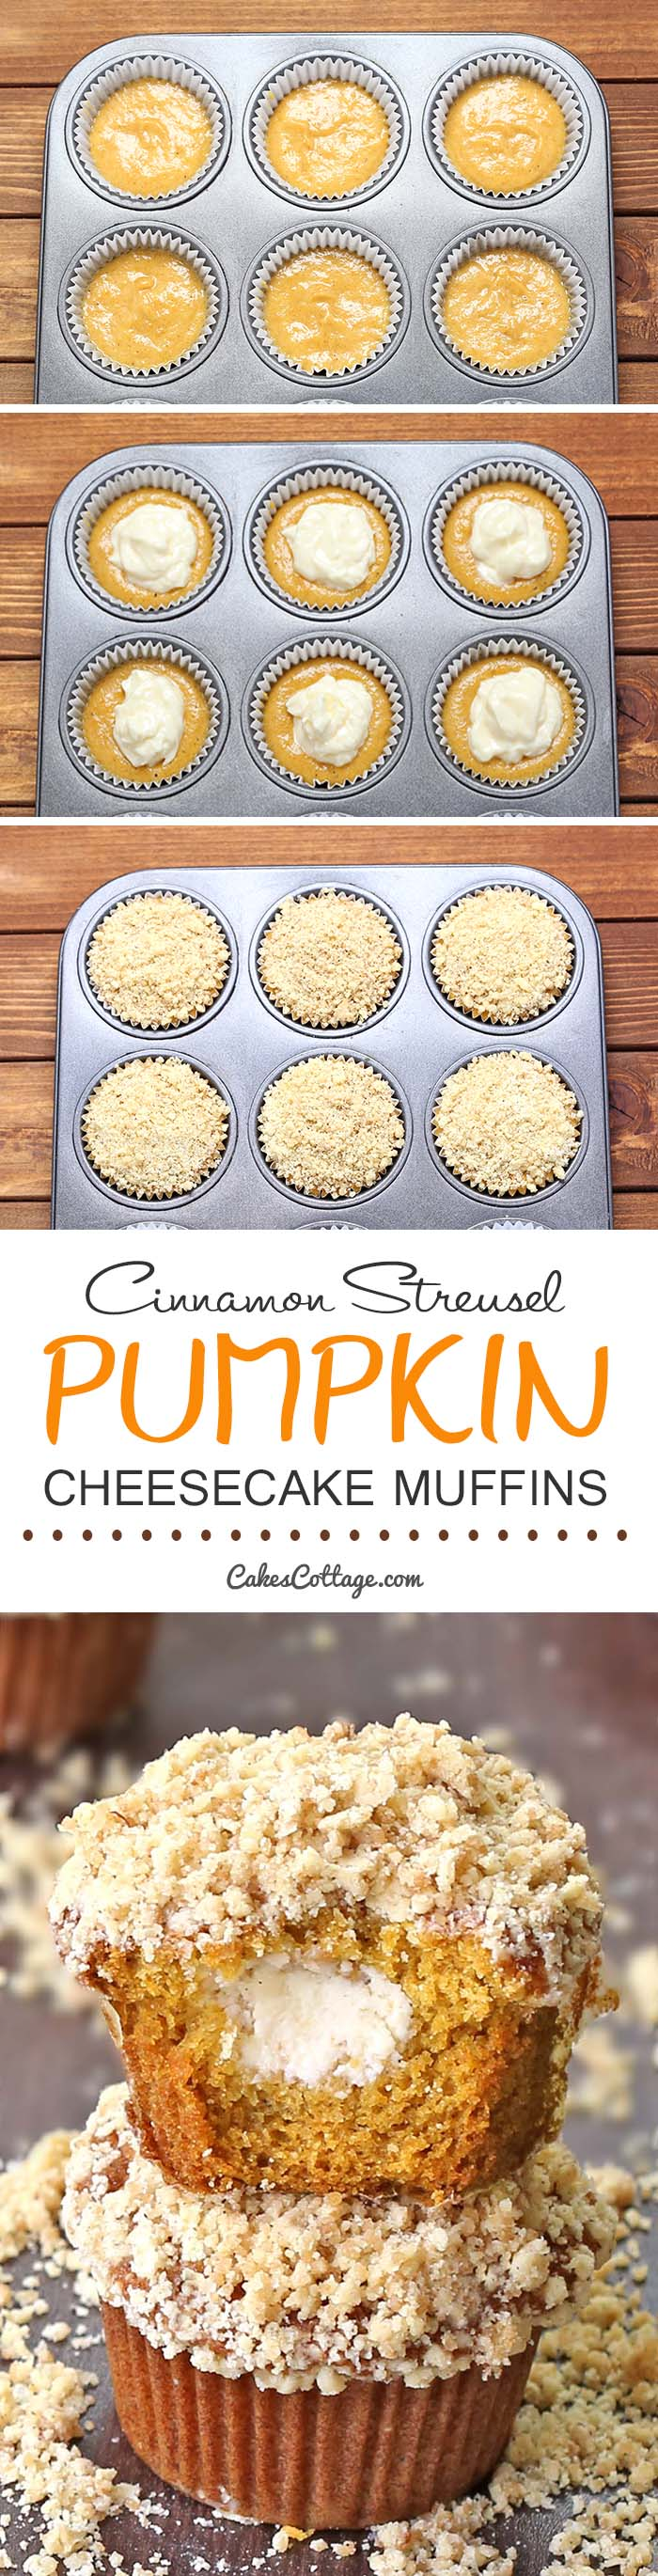 Delicious pumpkin muffins filled with cream cheese and topped with a cinnamon streusel.